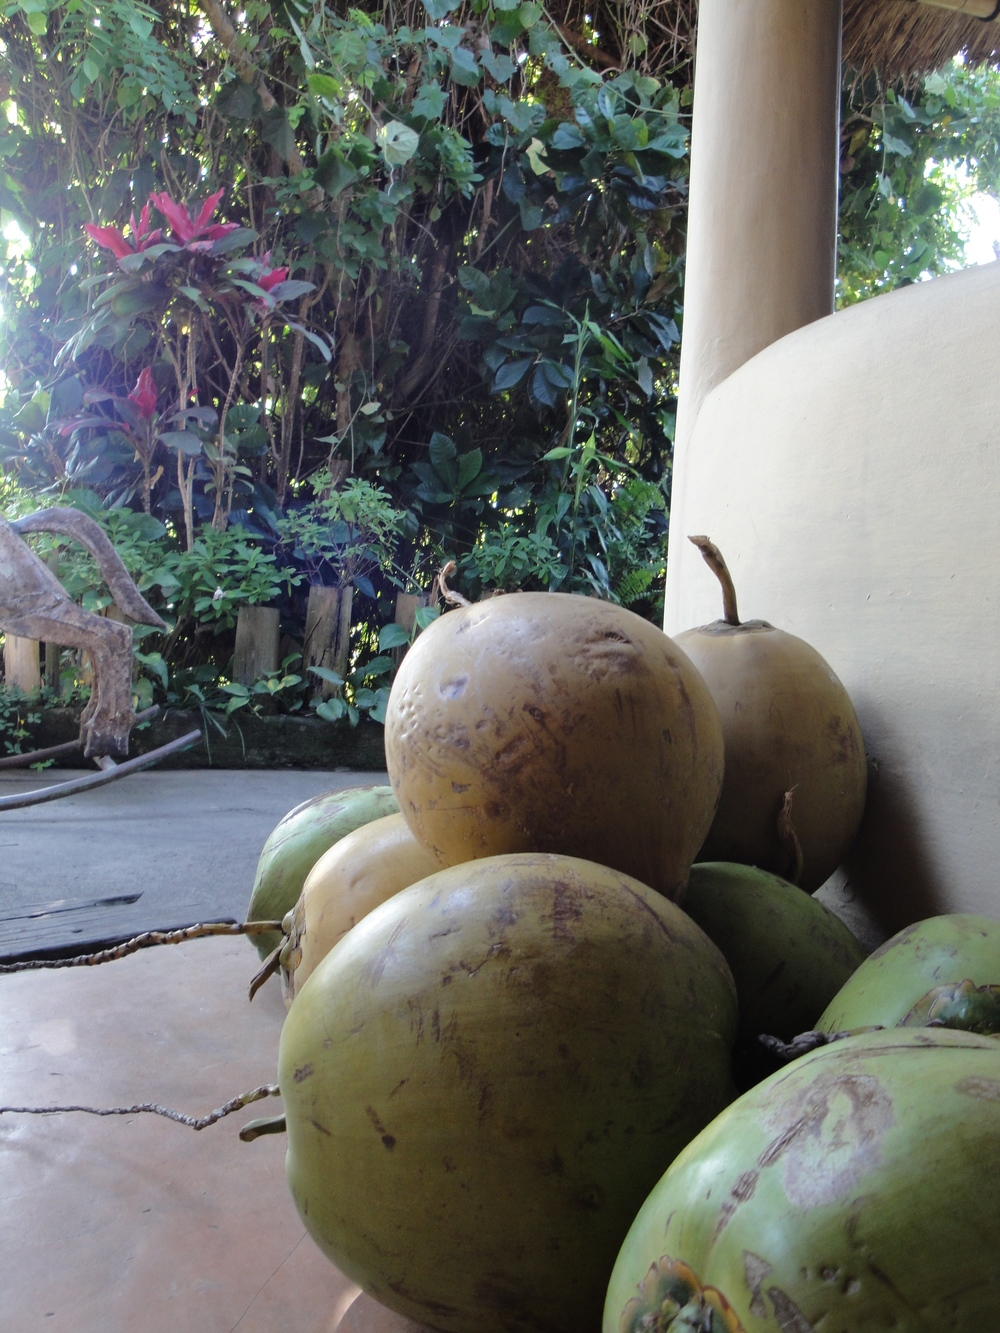 Coconuts waiting to be ordered.